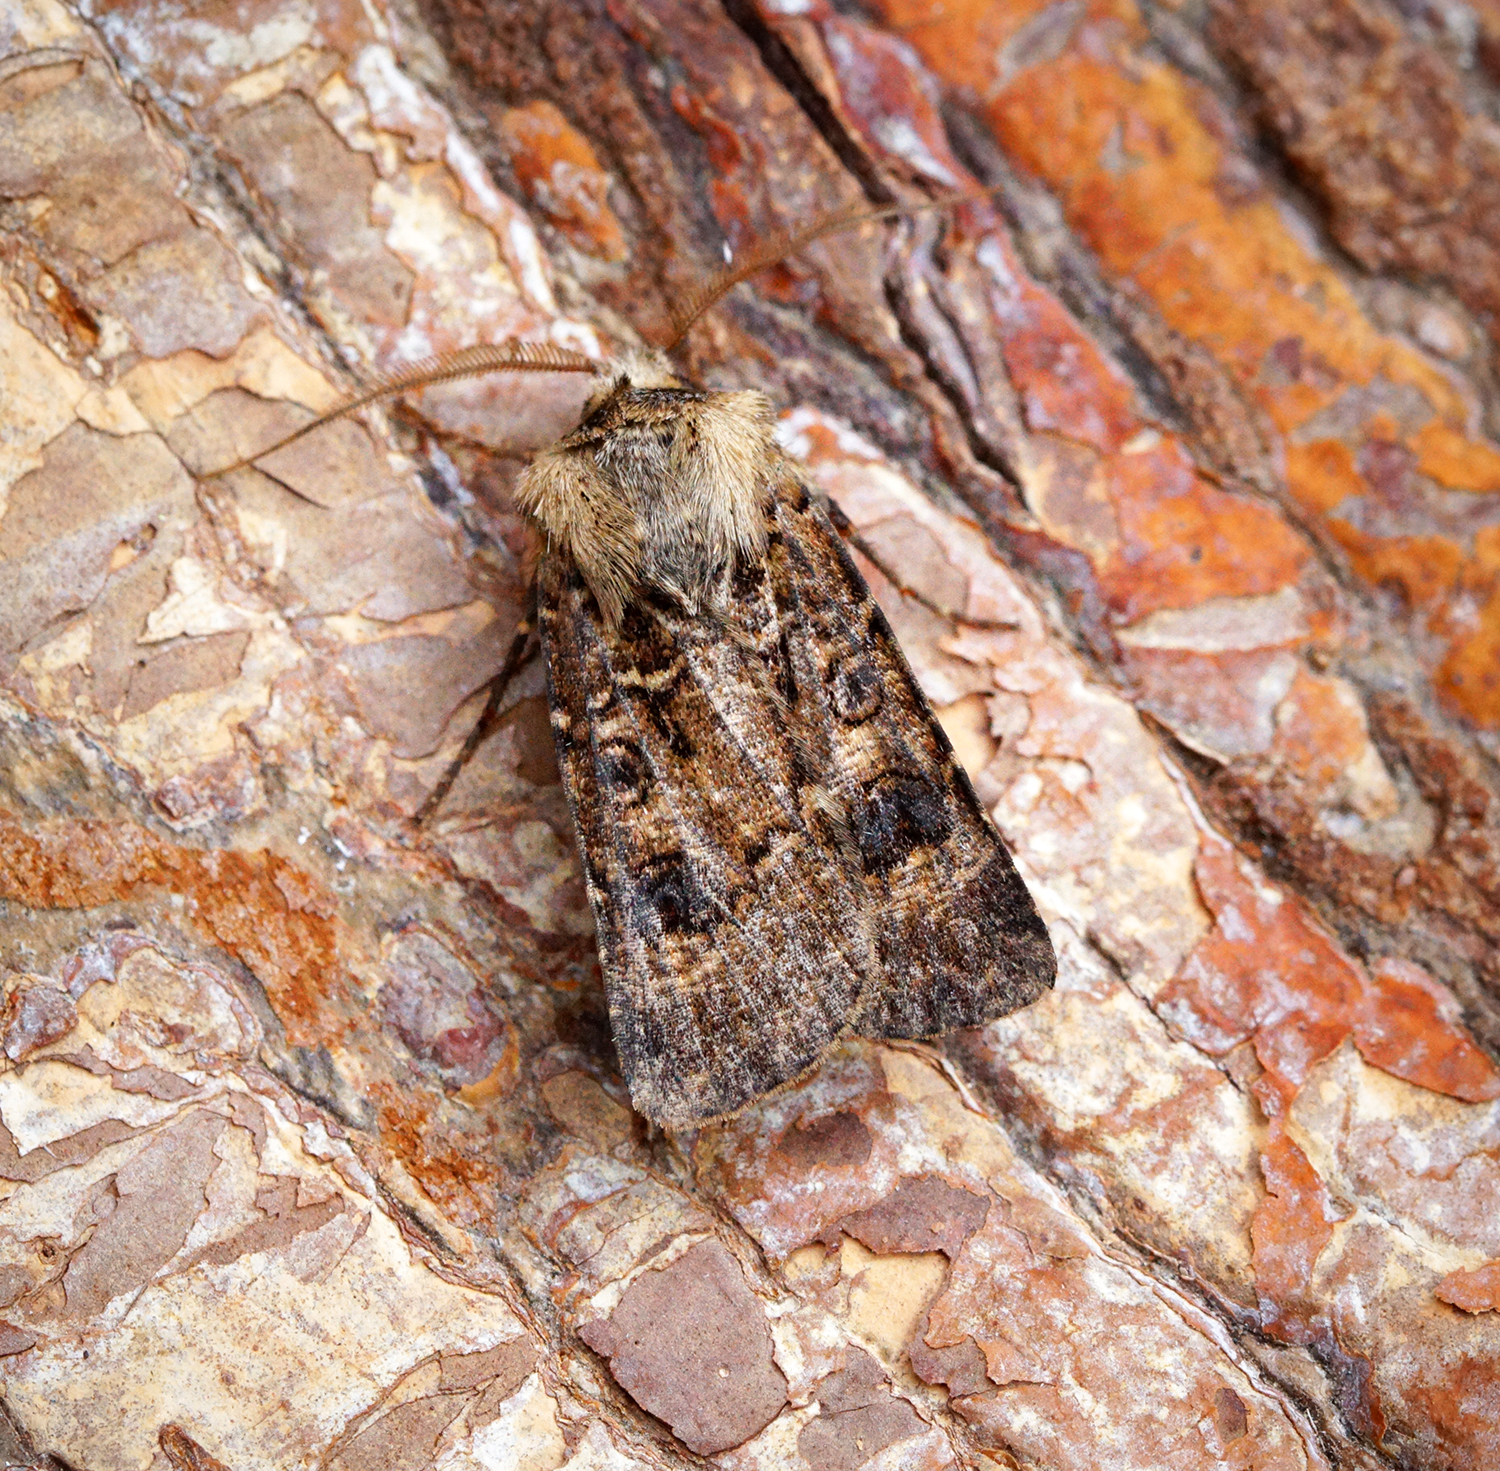 Herts Moth Blog: Garden Catch 26/06/18 - Common but welcome